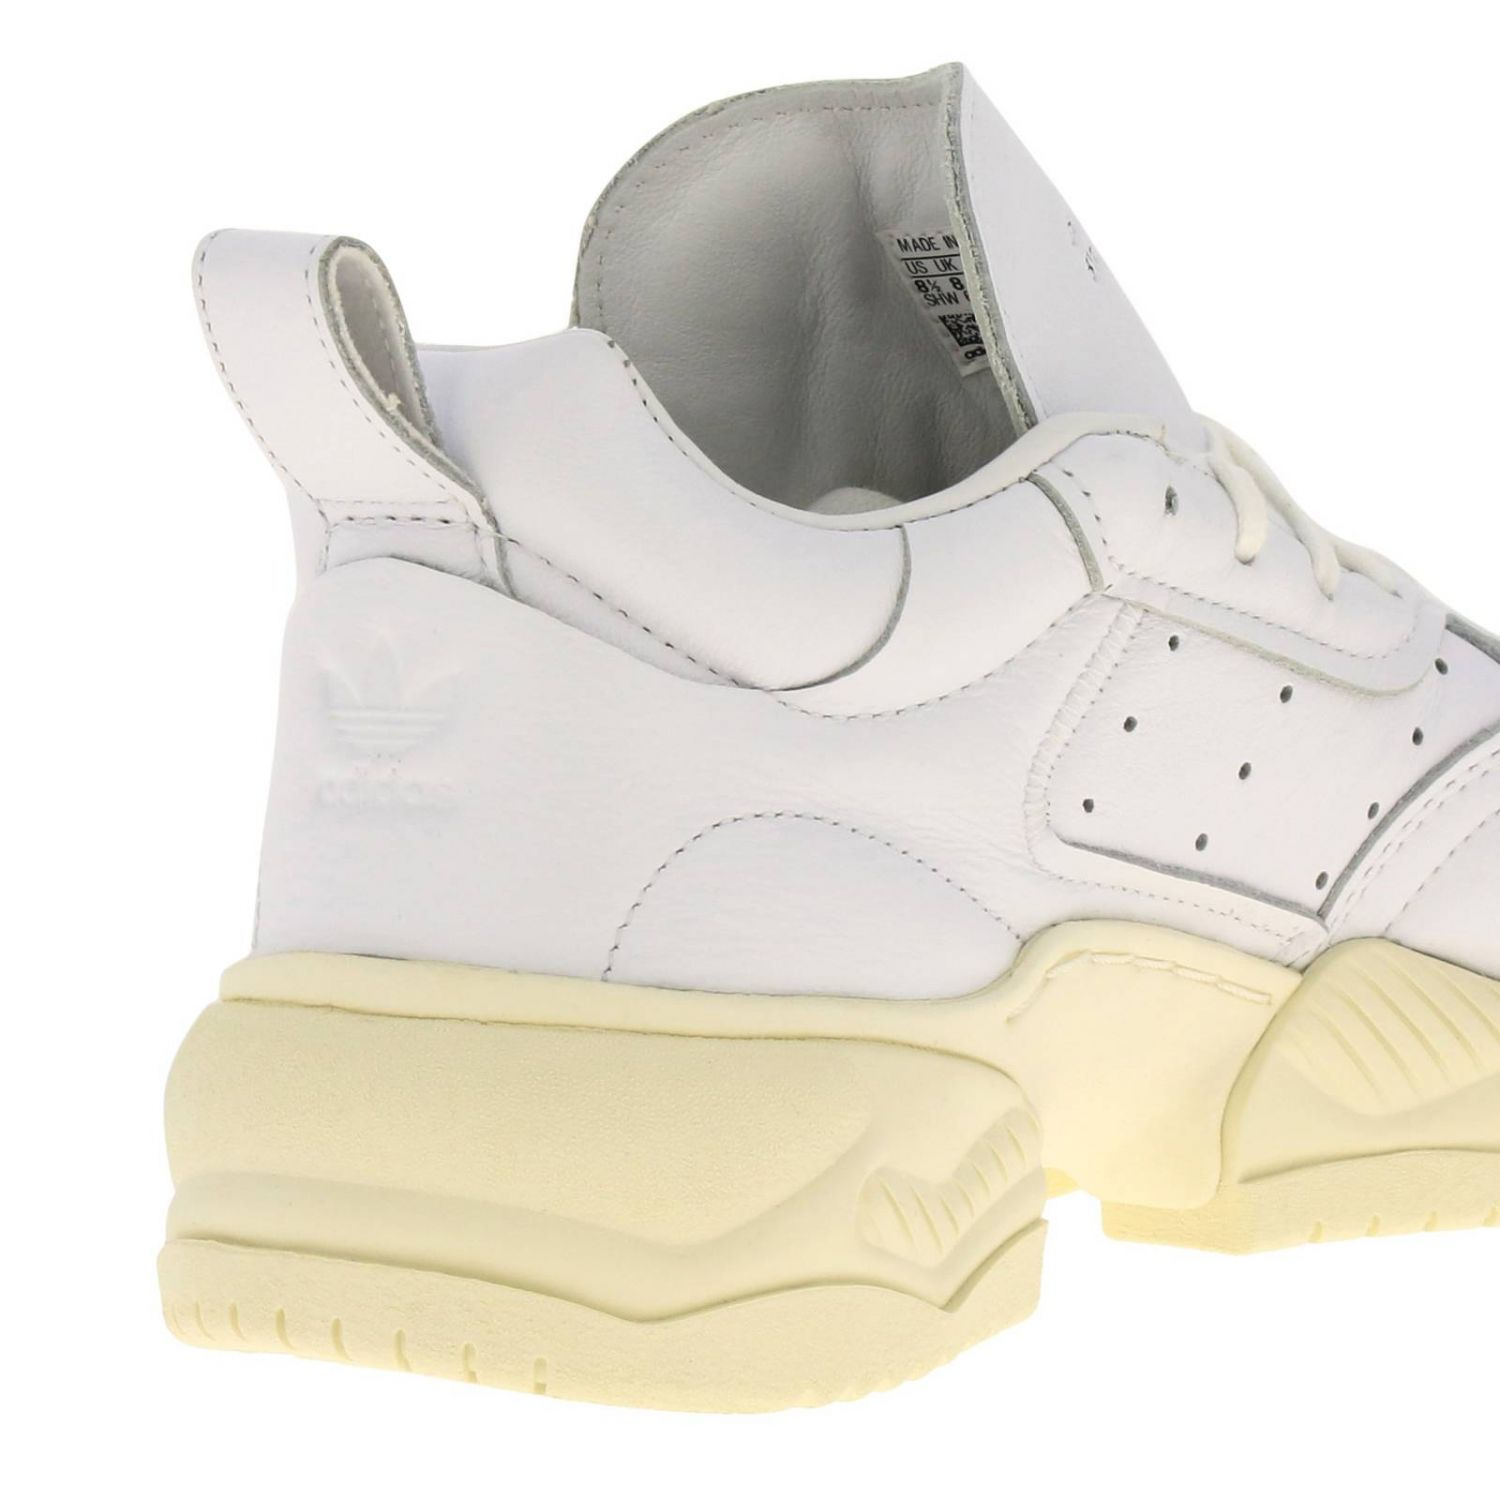 Trainers Adidas Originals: Shoes men Adidas Originals white 4